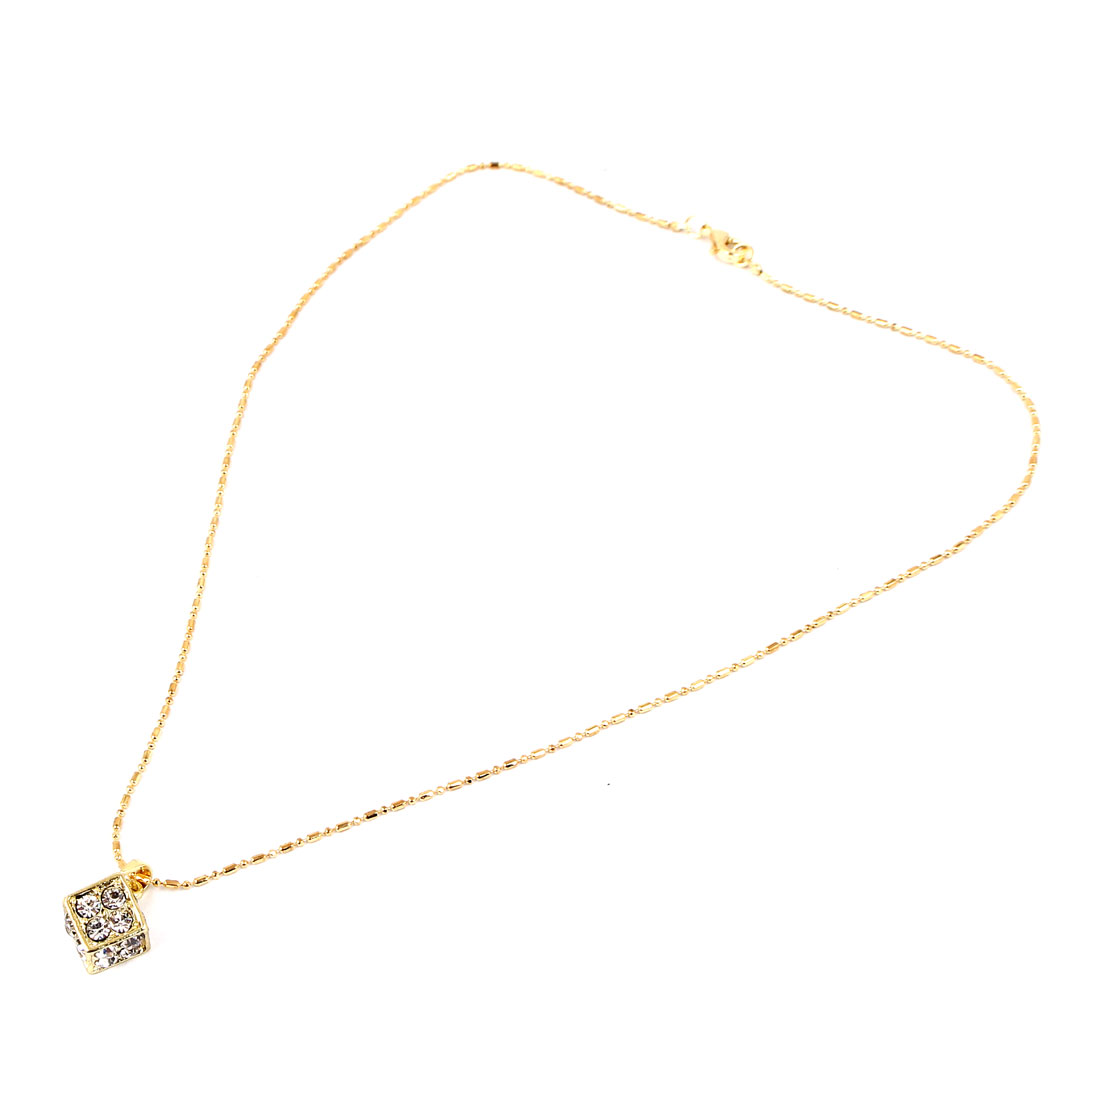 Gold Tone Metal Rhinestone Pendant Chain Necklace Jewelry Gift